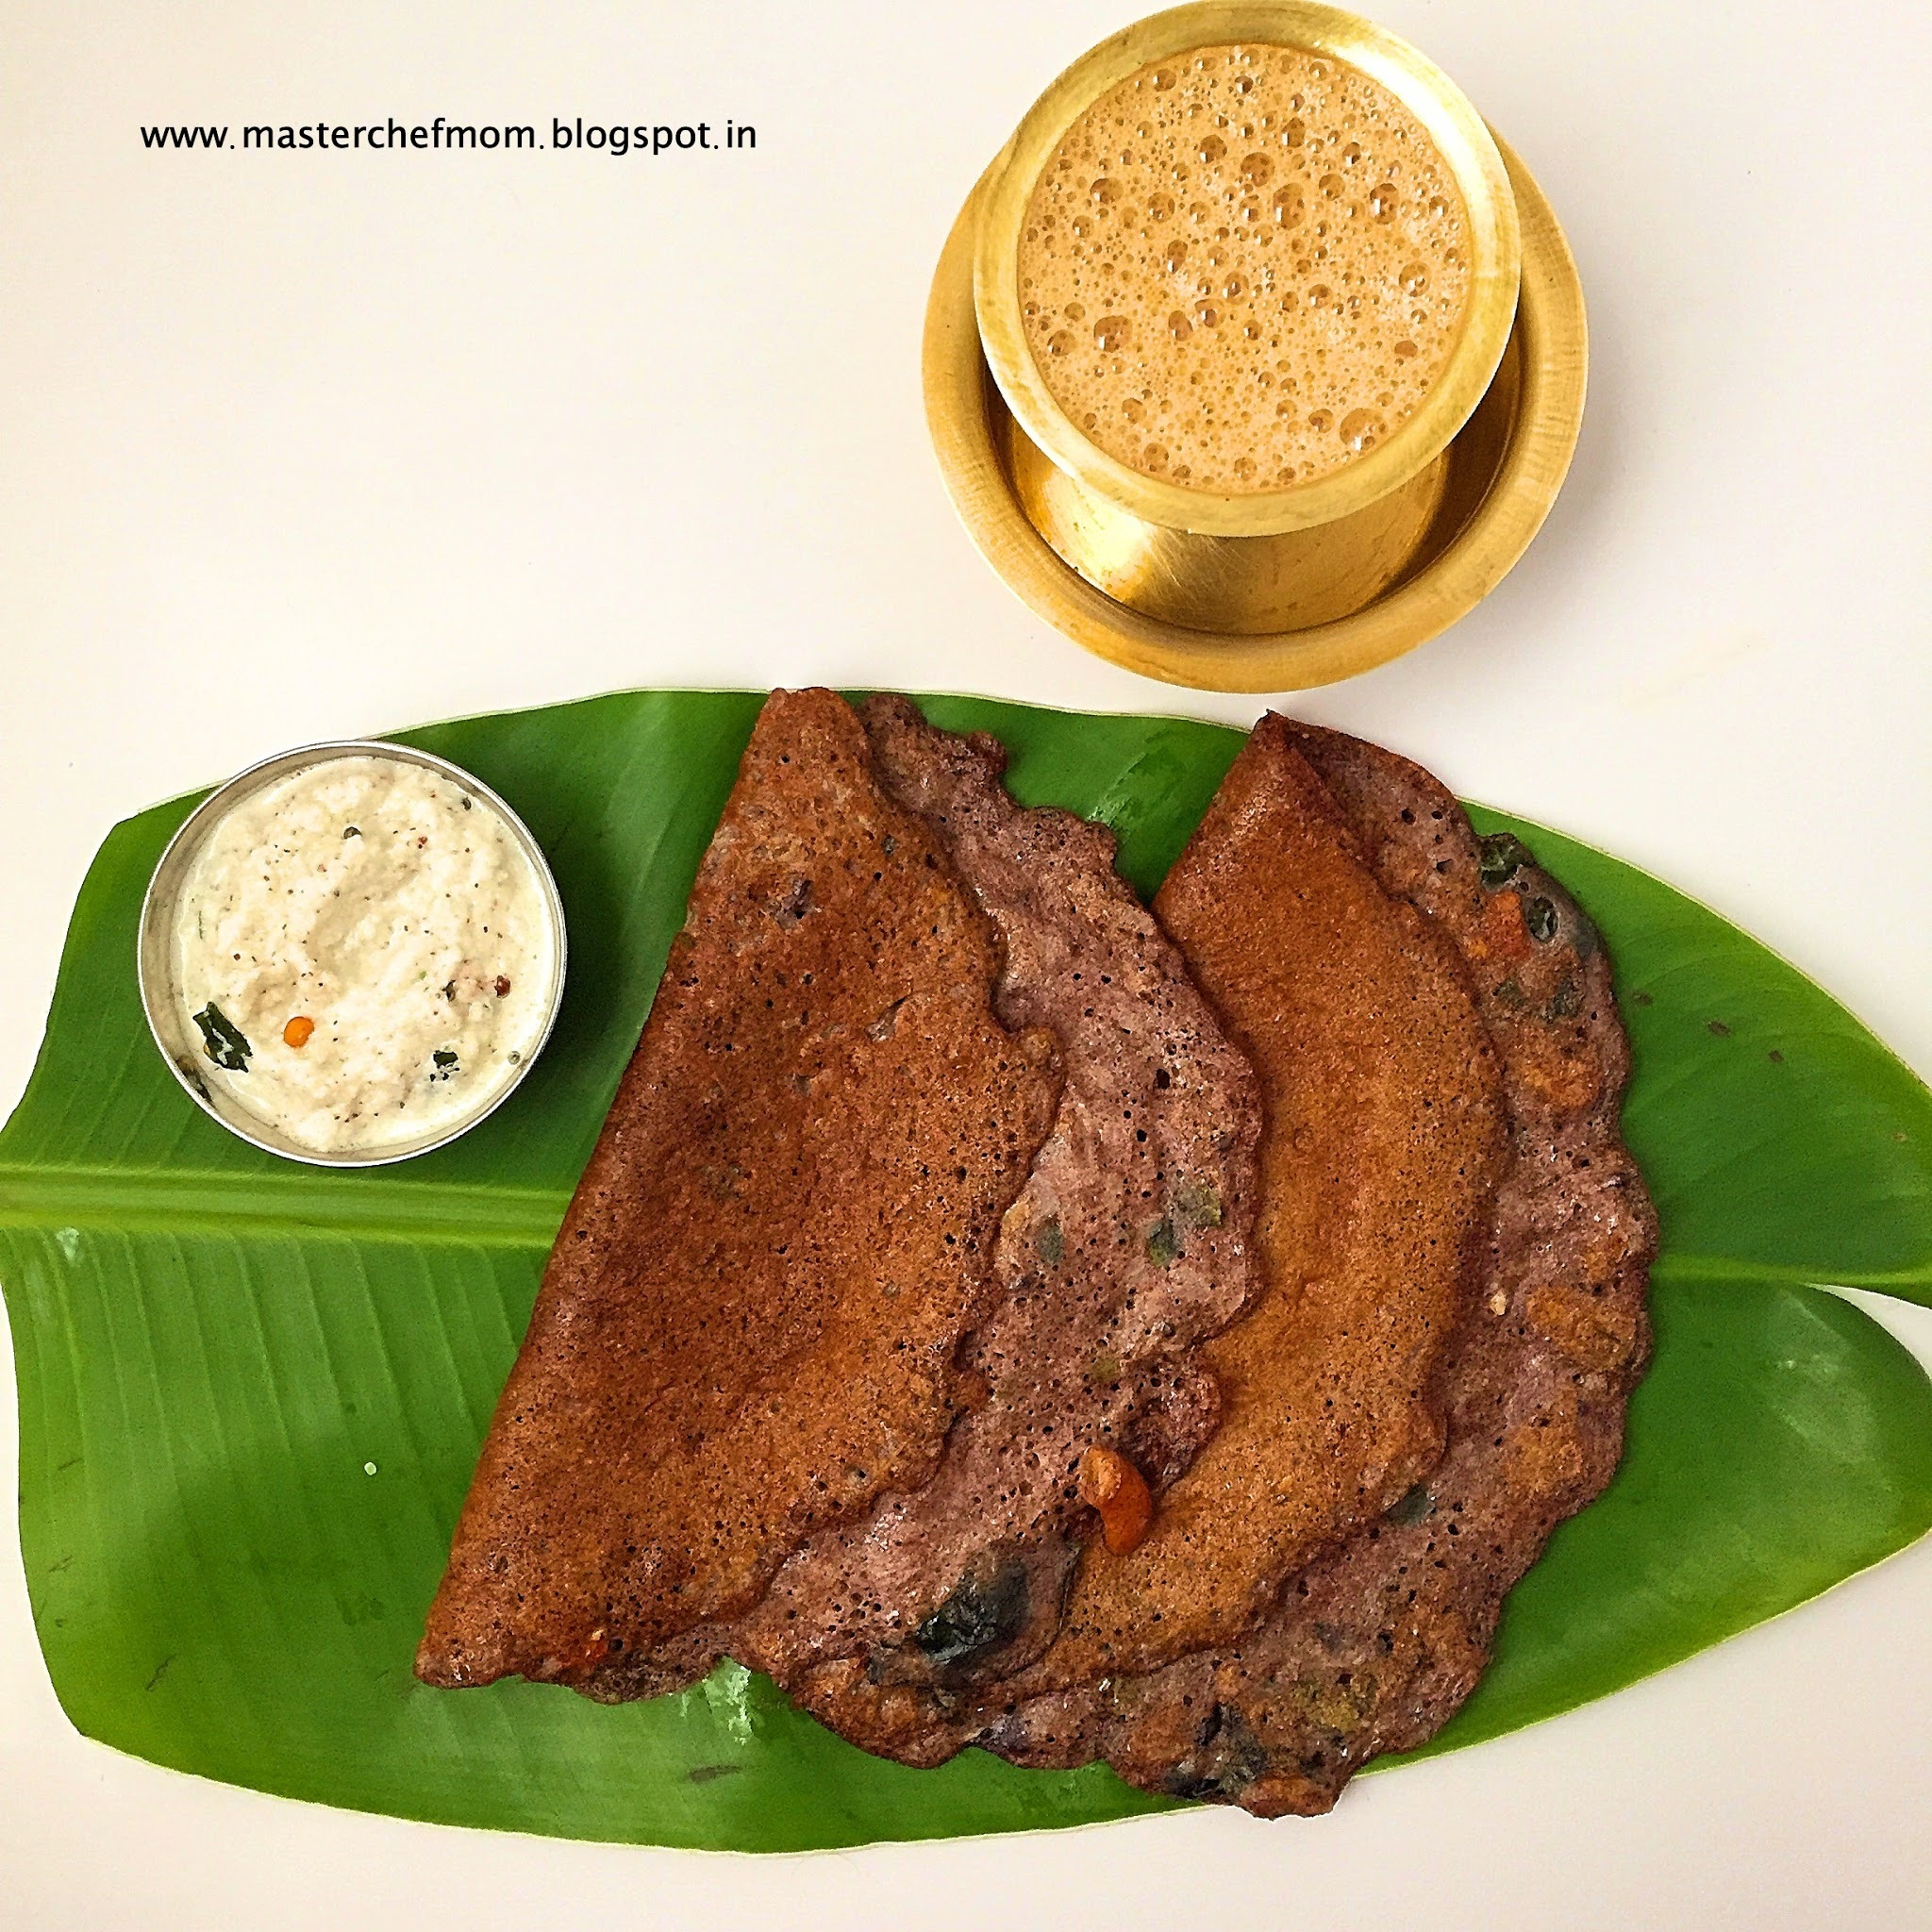 Ragi Dosai | Fermented Ragi Dosa Recipe | Finger Millet Dosa Recipe | Stepwise Pictures | Gluten Free and Vegan Recipe